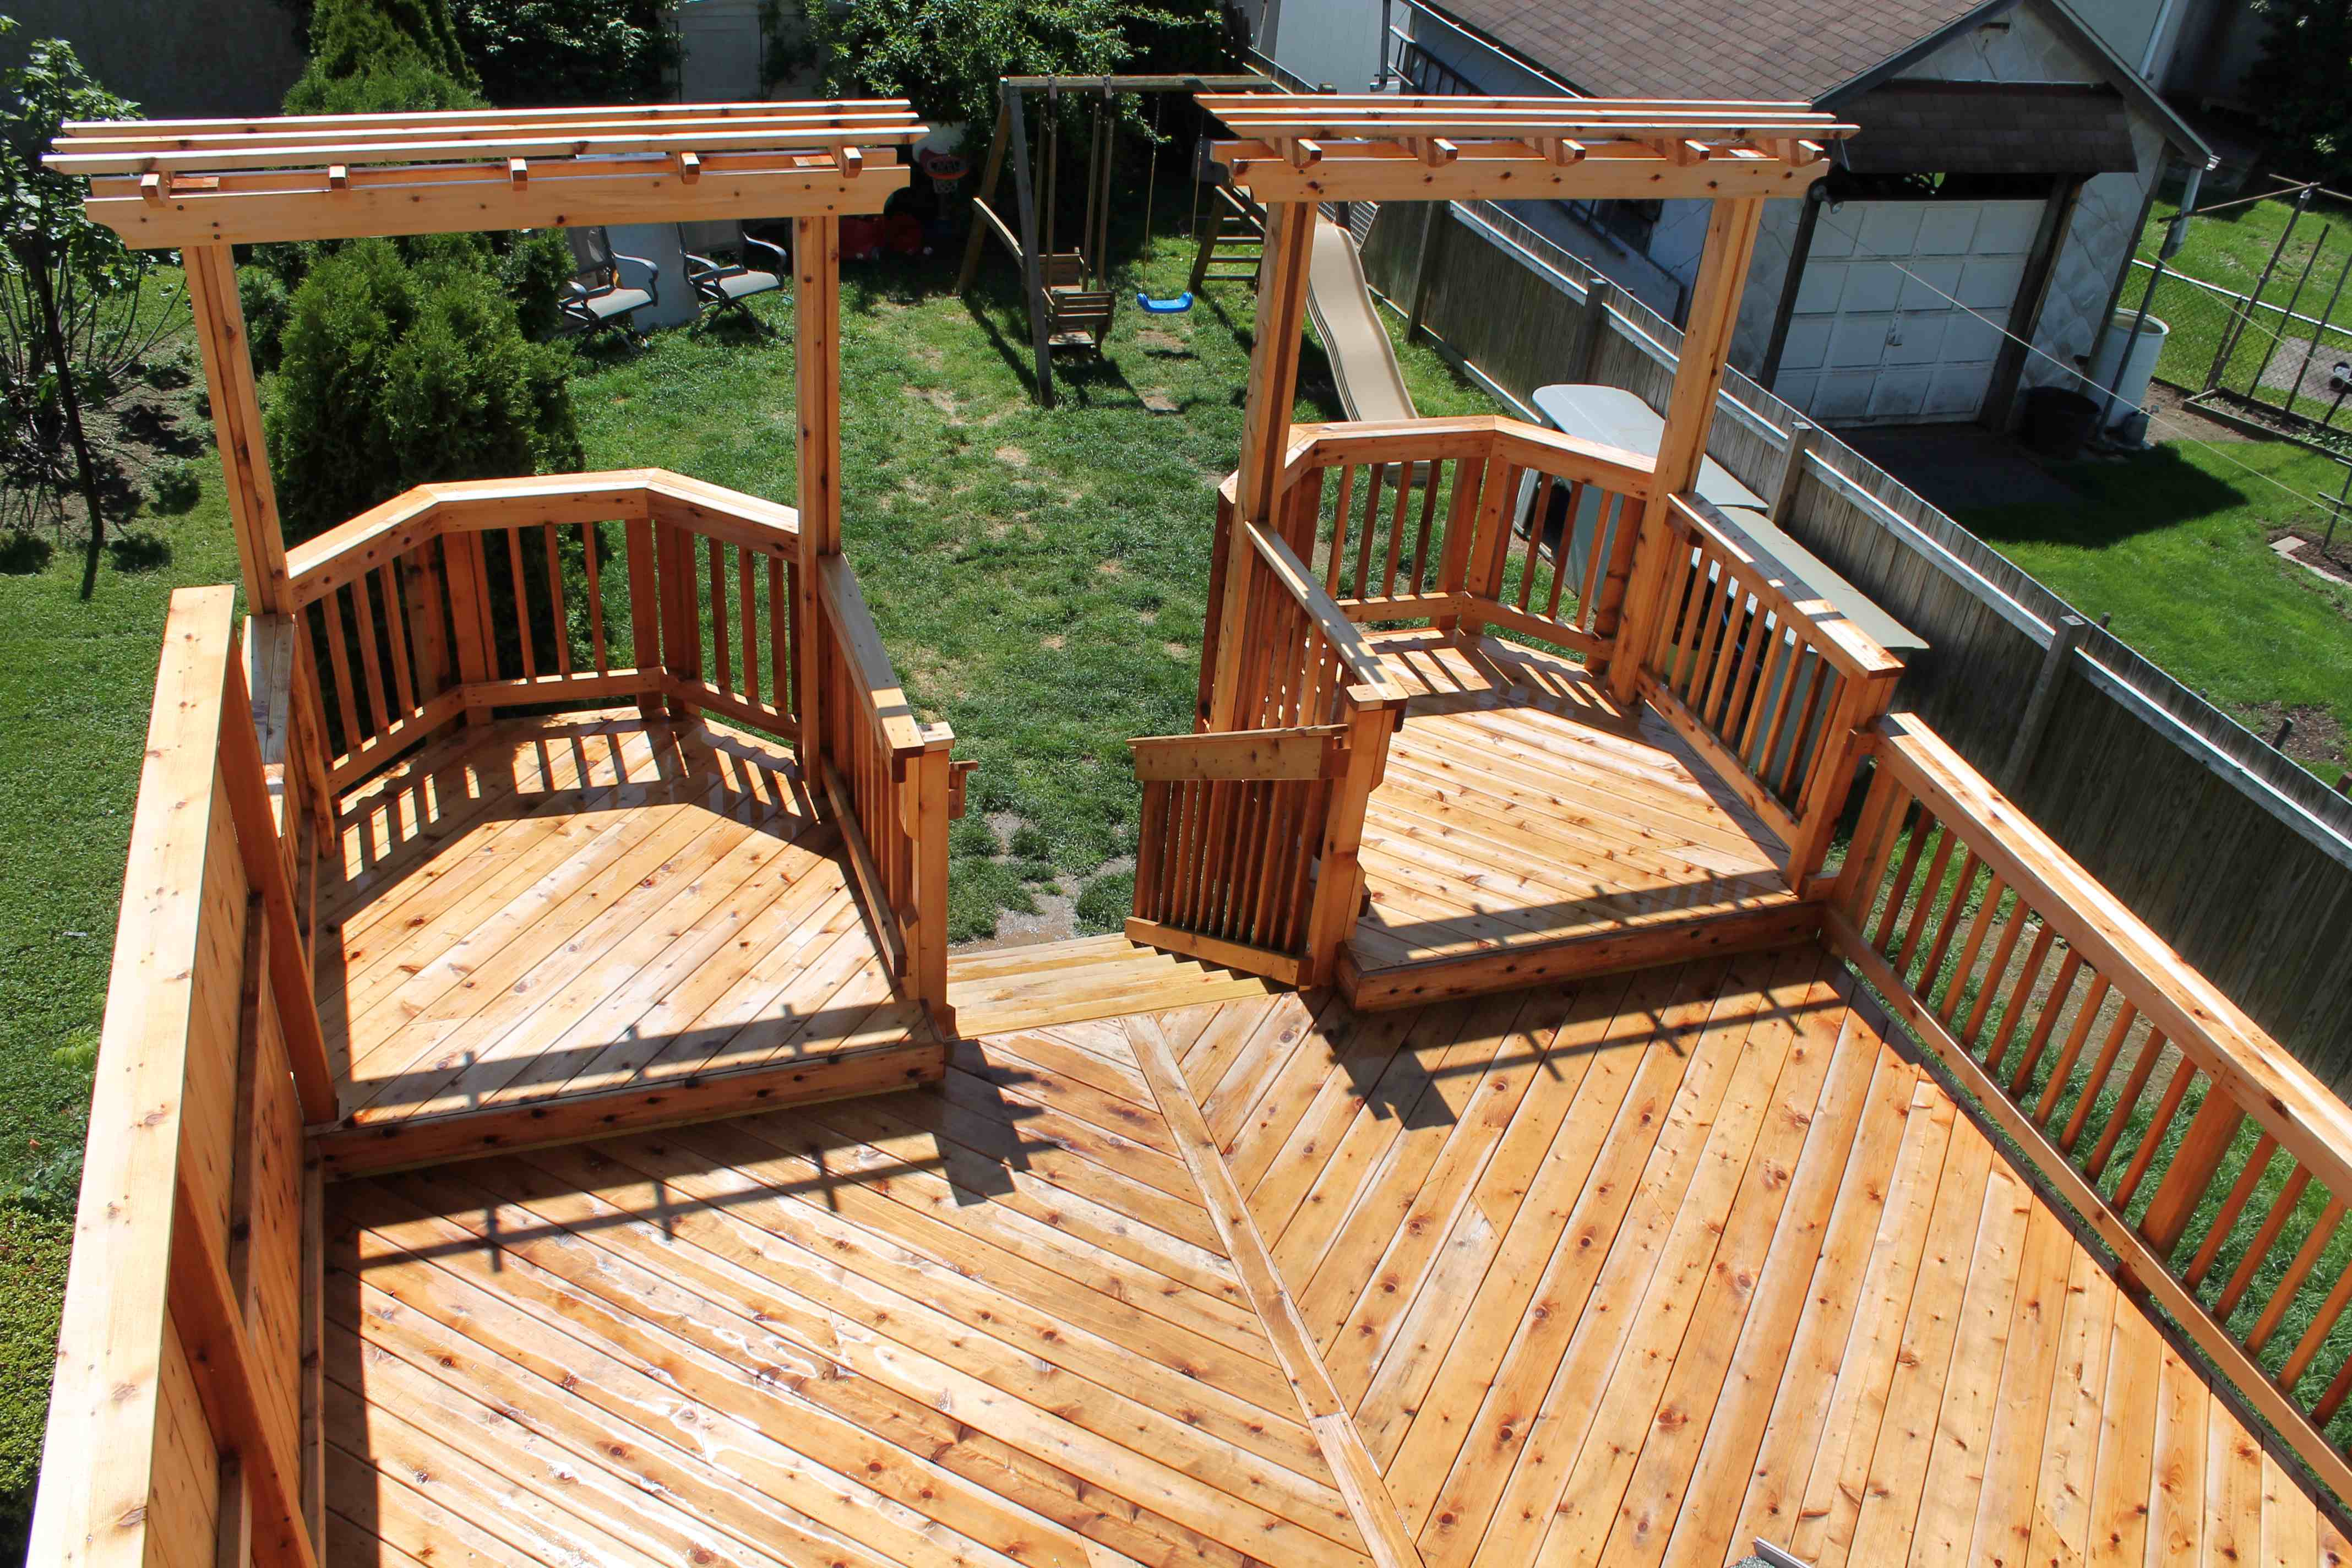 A pressure washer can damage a deck.